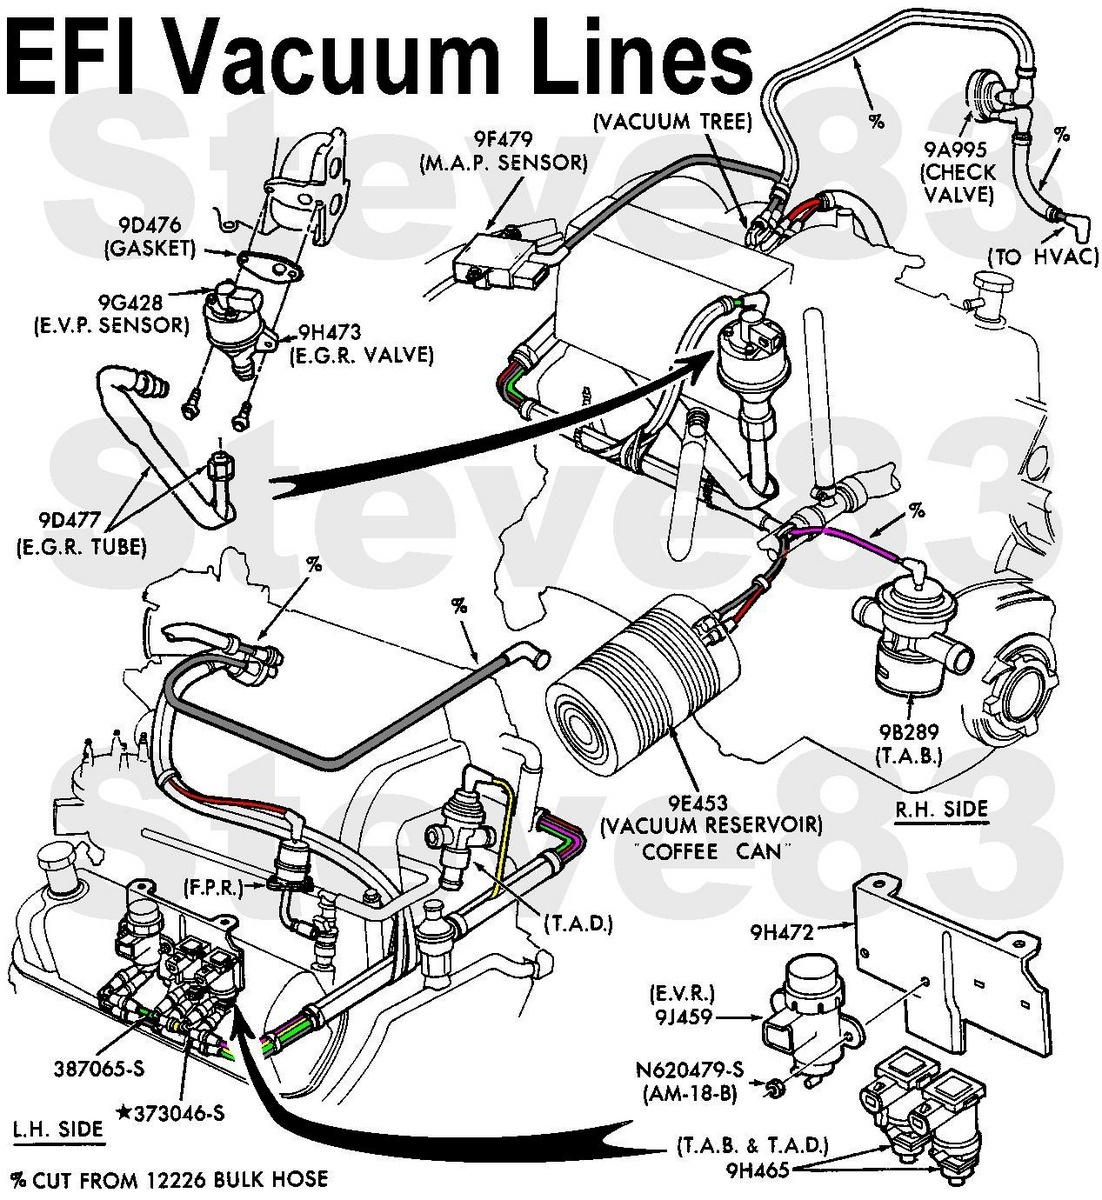 hight resolution of 1987 f150 vacuum diagram wiring diagram list 1987 ford f150 4 9 vacuum diagram 1987 f150 vacuum diagram